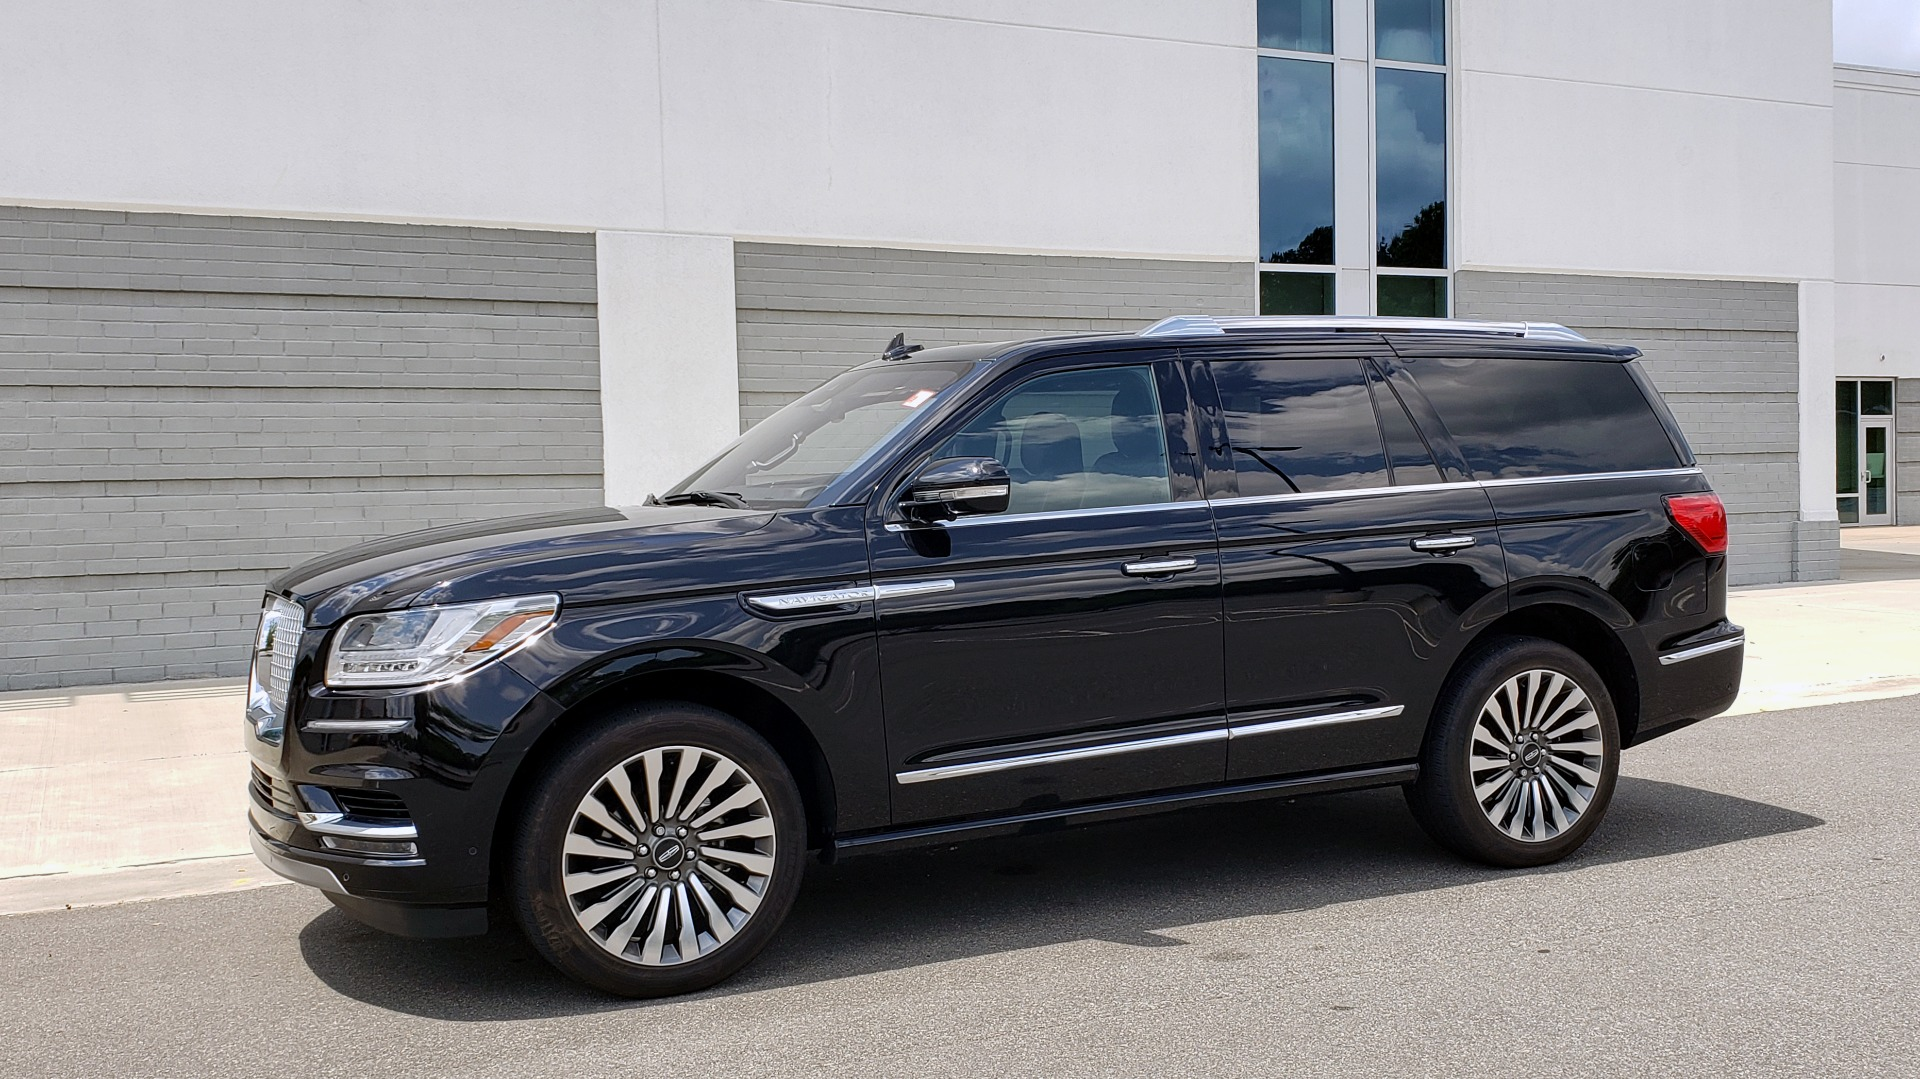 Used 2019 Lincoln NAVIGATOR RESERVE 4X4 / NAV / PANO-ROOF / REVEL ULTIMA AUDIO / 3-ROW / REARVIEW for sale $74,795 at Formula Imports in Charlotte NC 28227 4